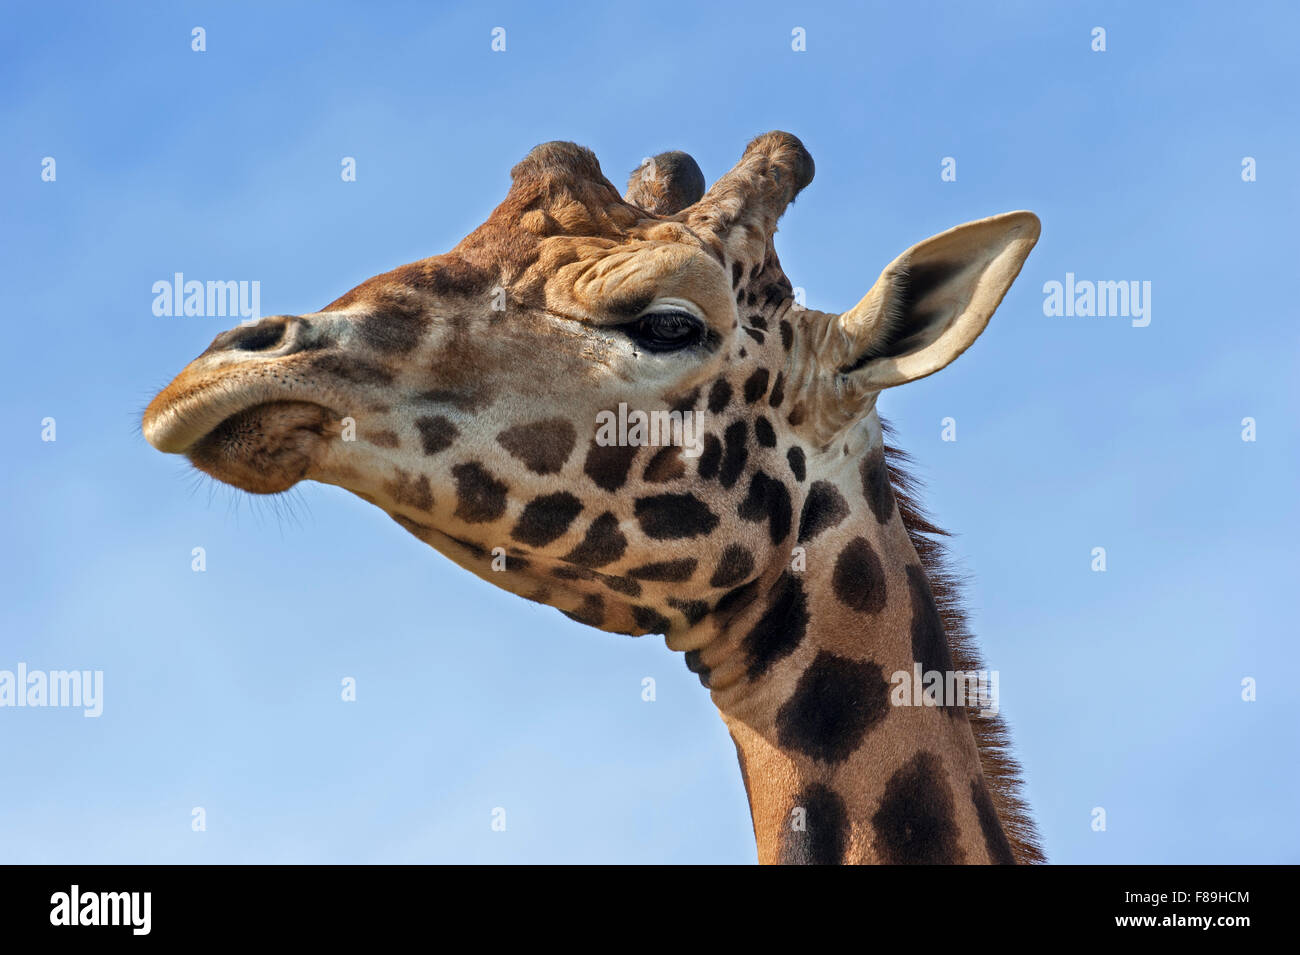 Giraffe (Giraffa camelopardalis), close up of head against blue sky - Stock Image